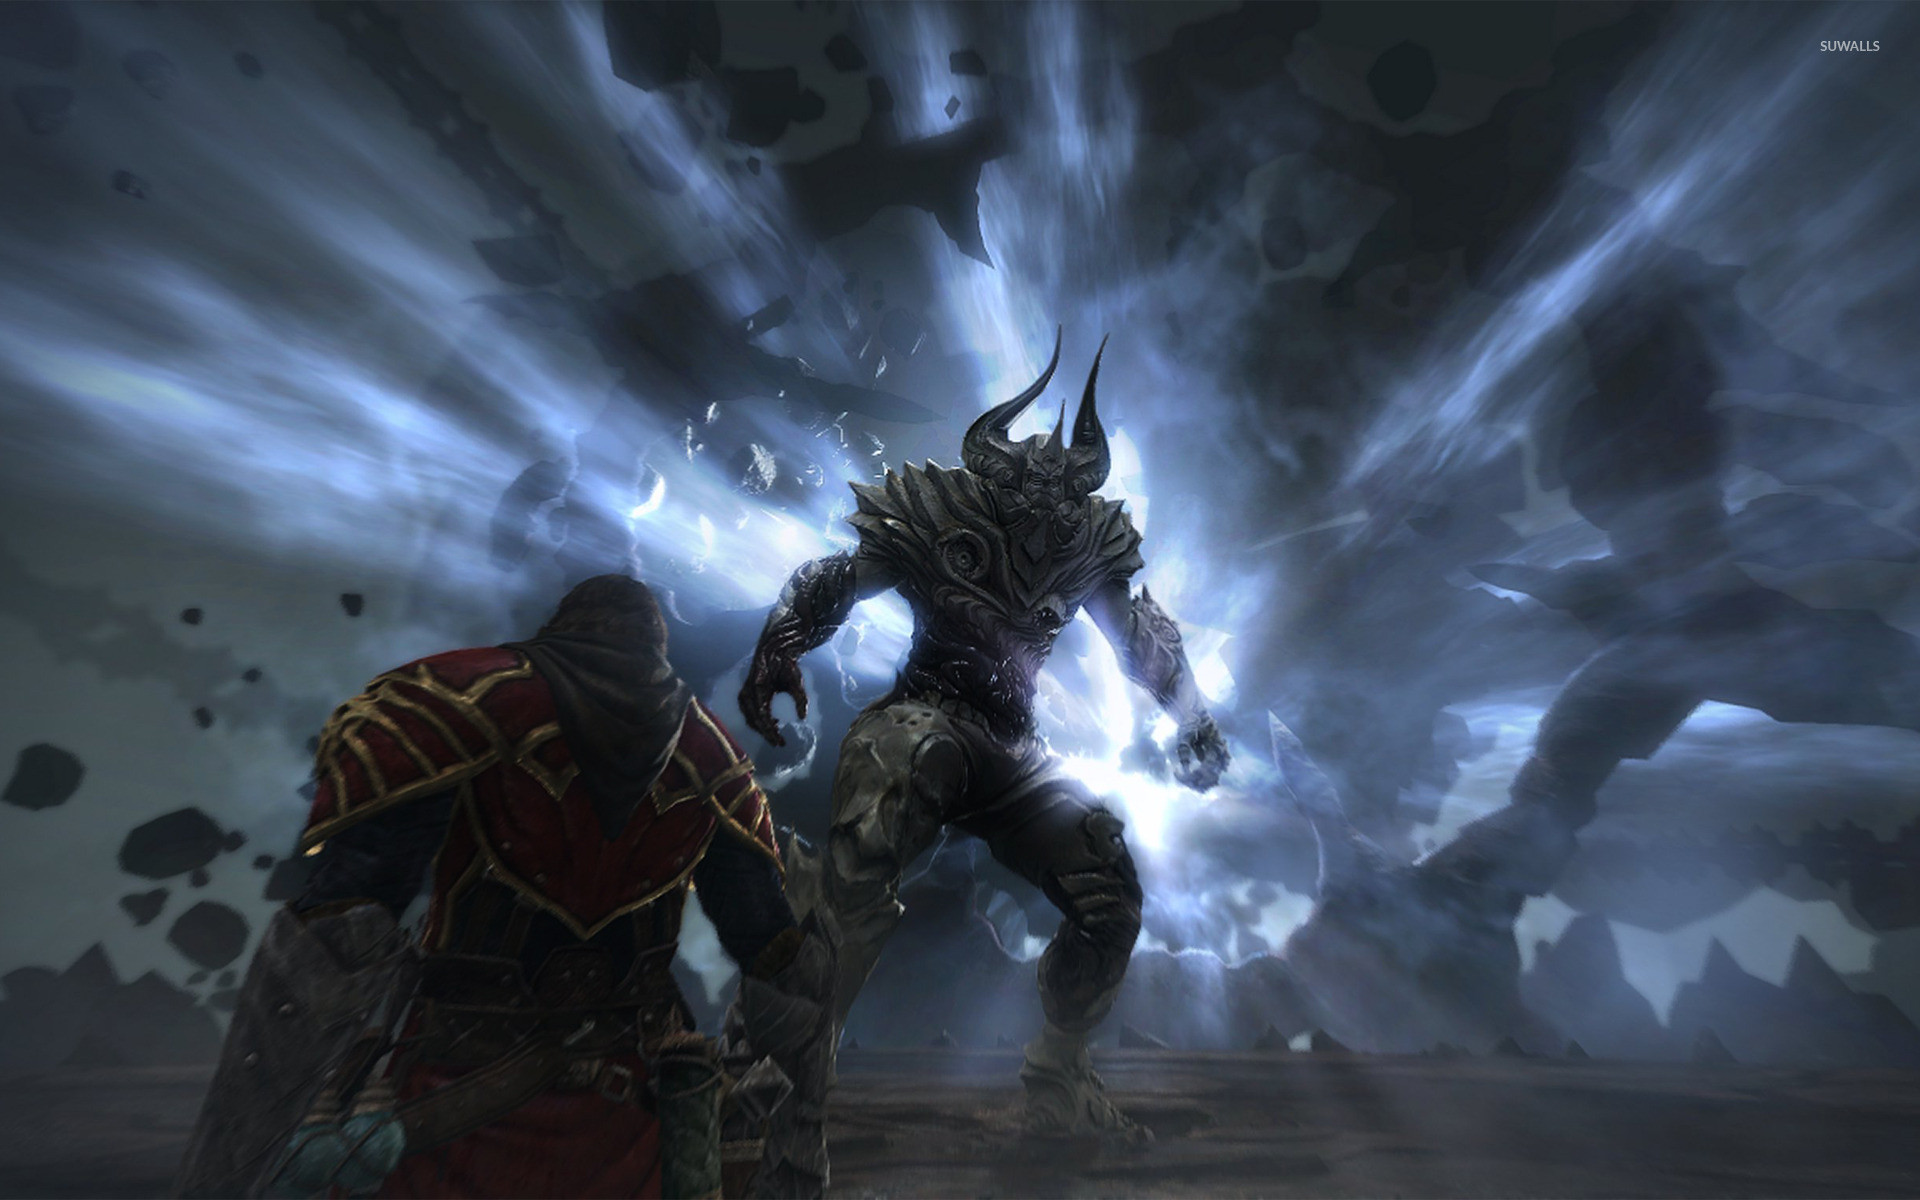 Res: 1920x1200, Castlevania: Lords of Shadow 2 [9] wallpaper